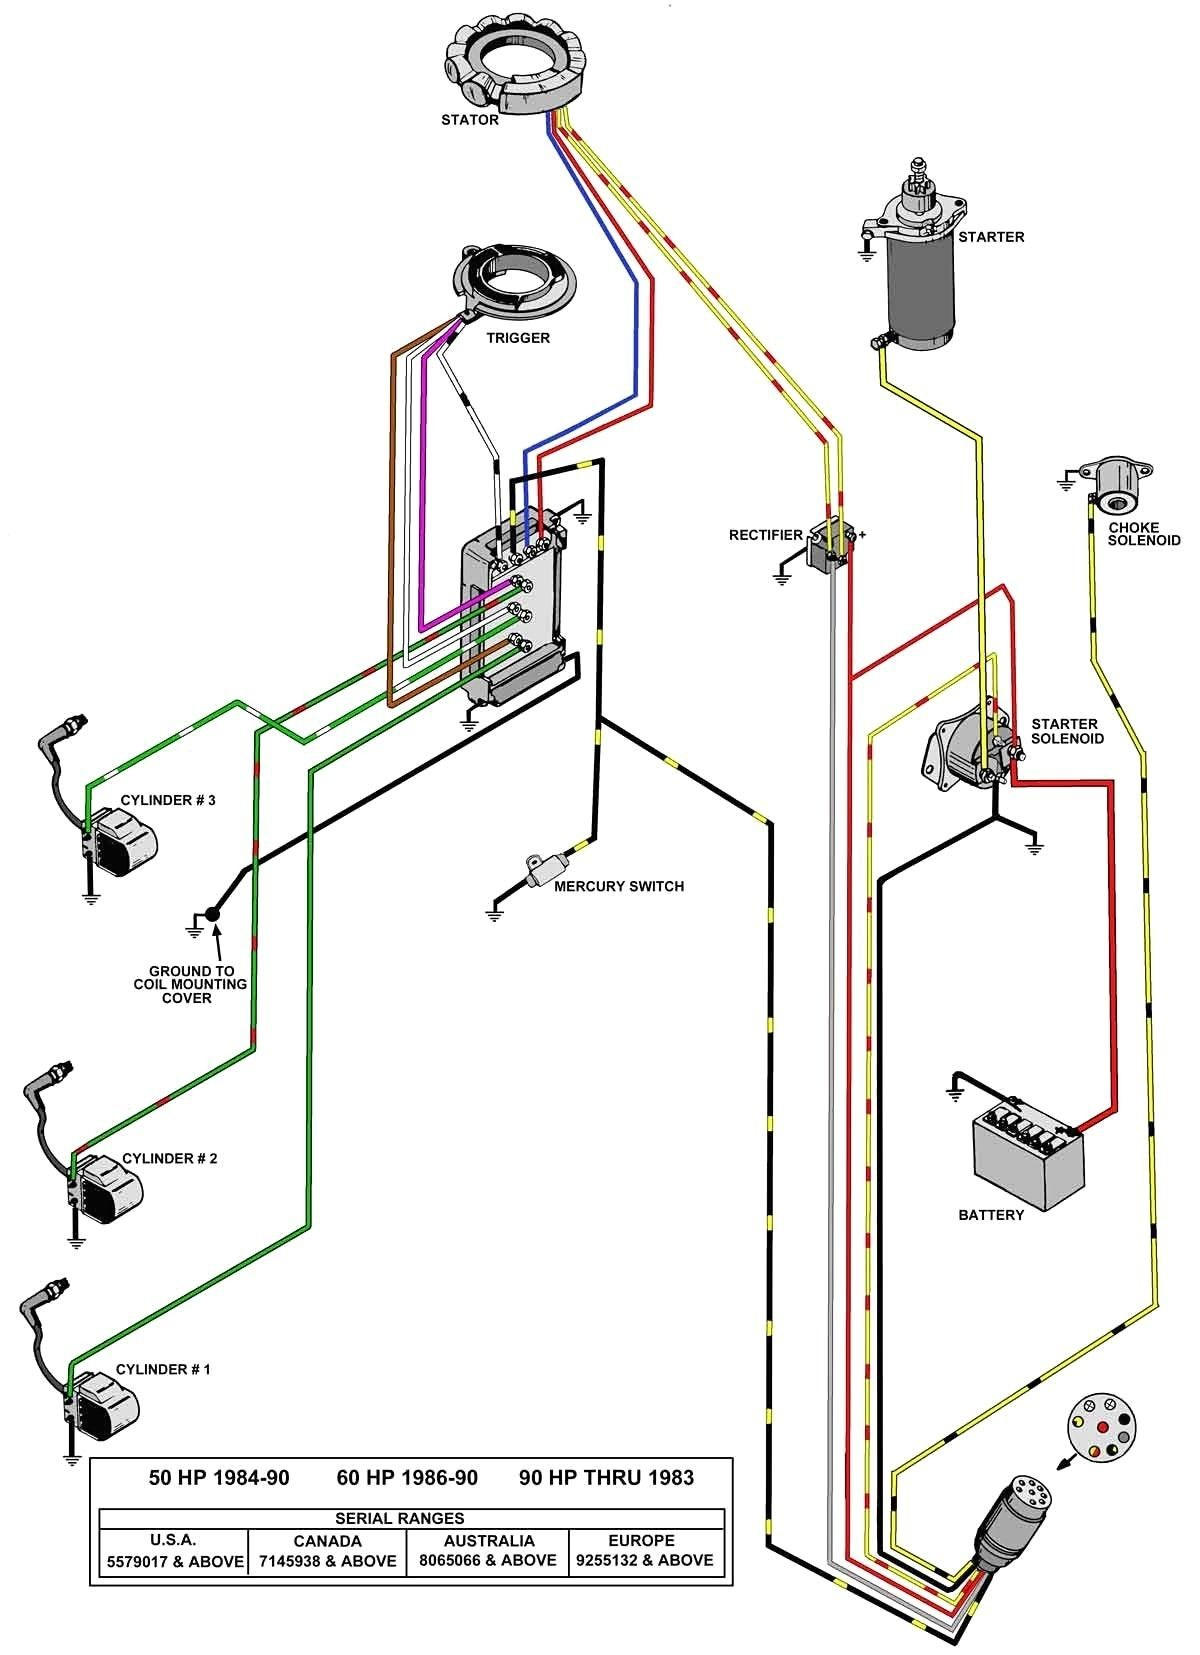 Ignition Key Wiring for 125hp 1996 Mercury Mercury Marine Ignition Switch Wiring Diagram with Images Of Ignition Key Wiring for 125hp 1996 Mercury